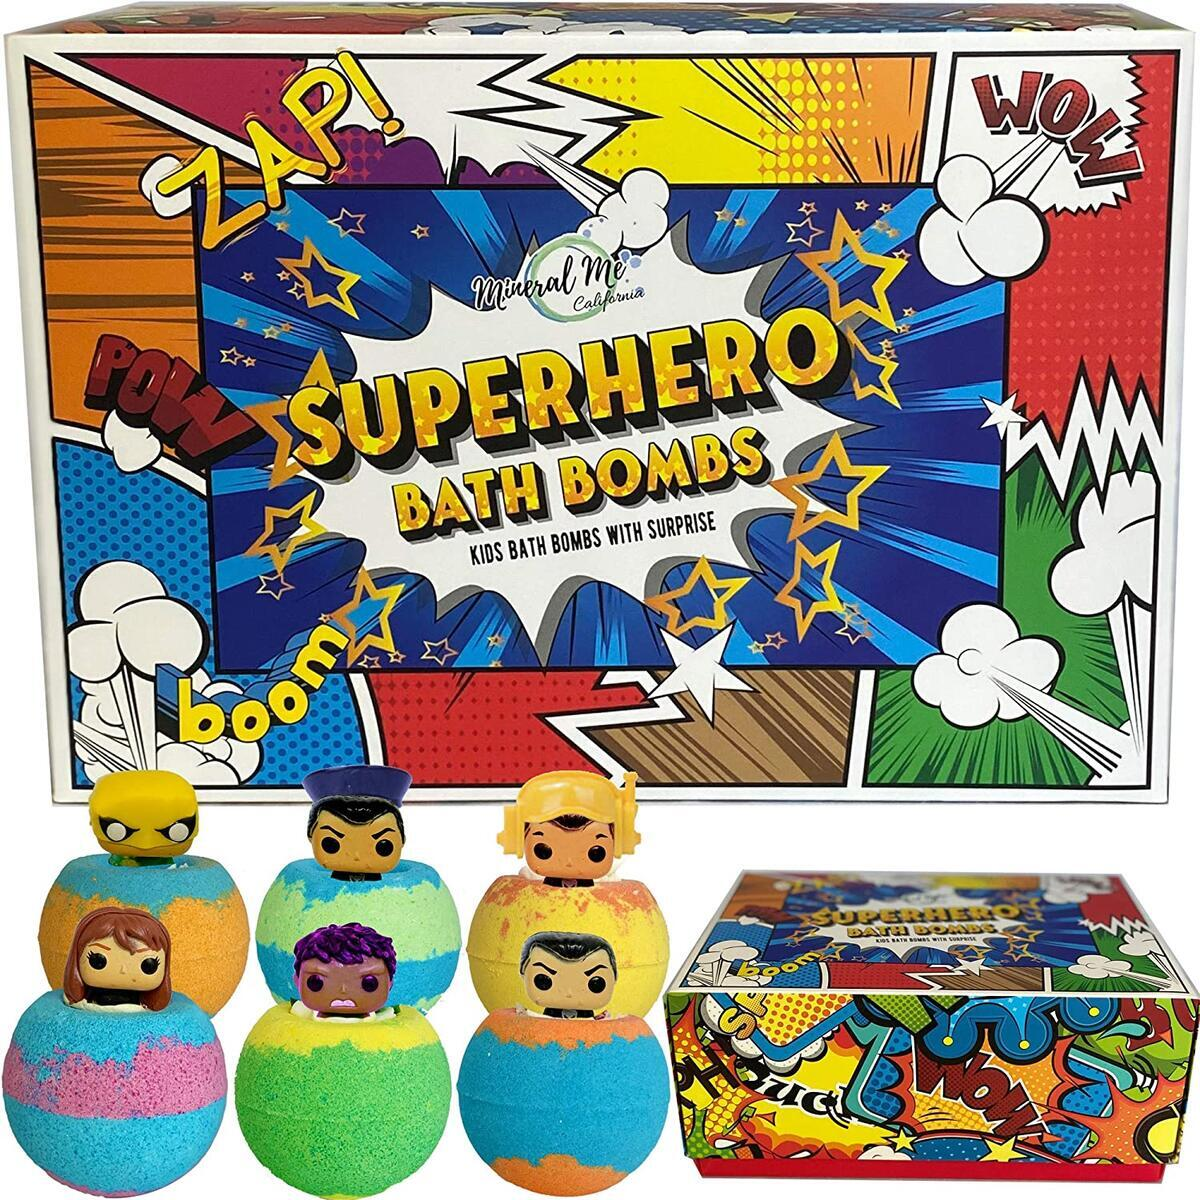 Superhero Bath Bombs for Kids with Surprise Toys